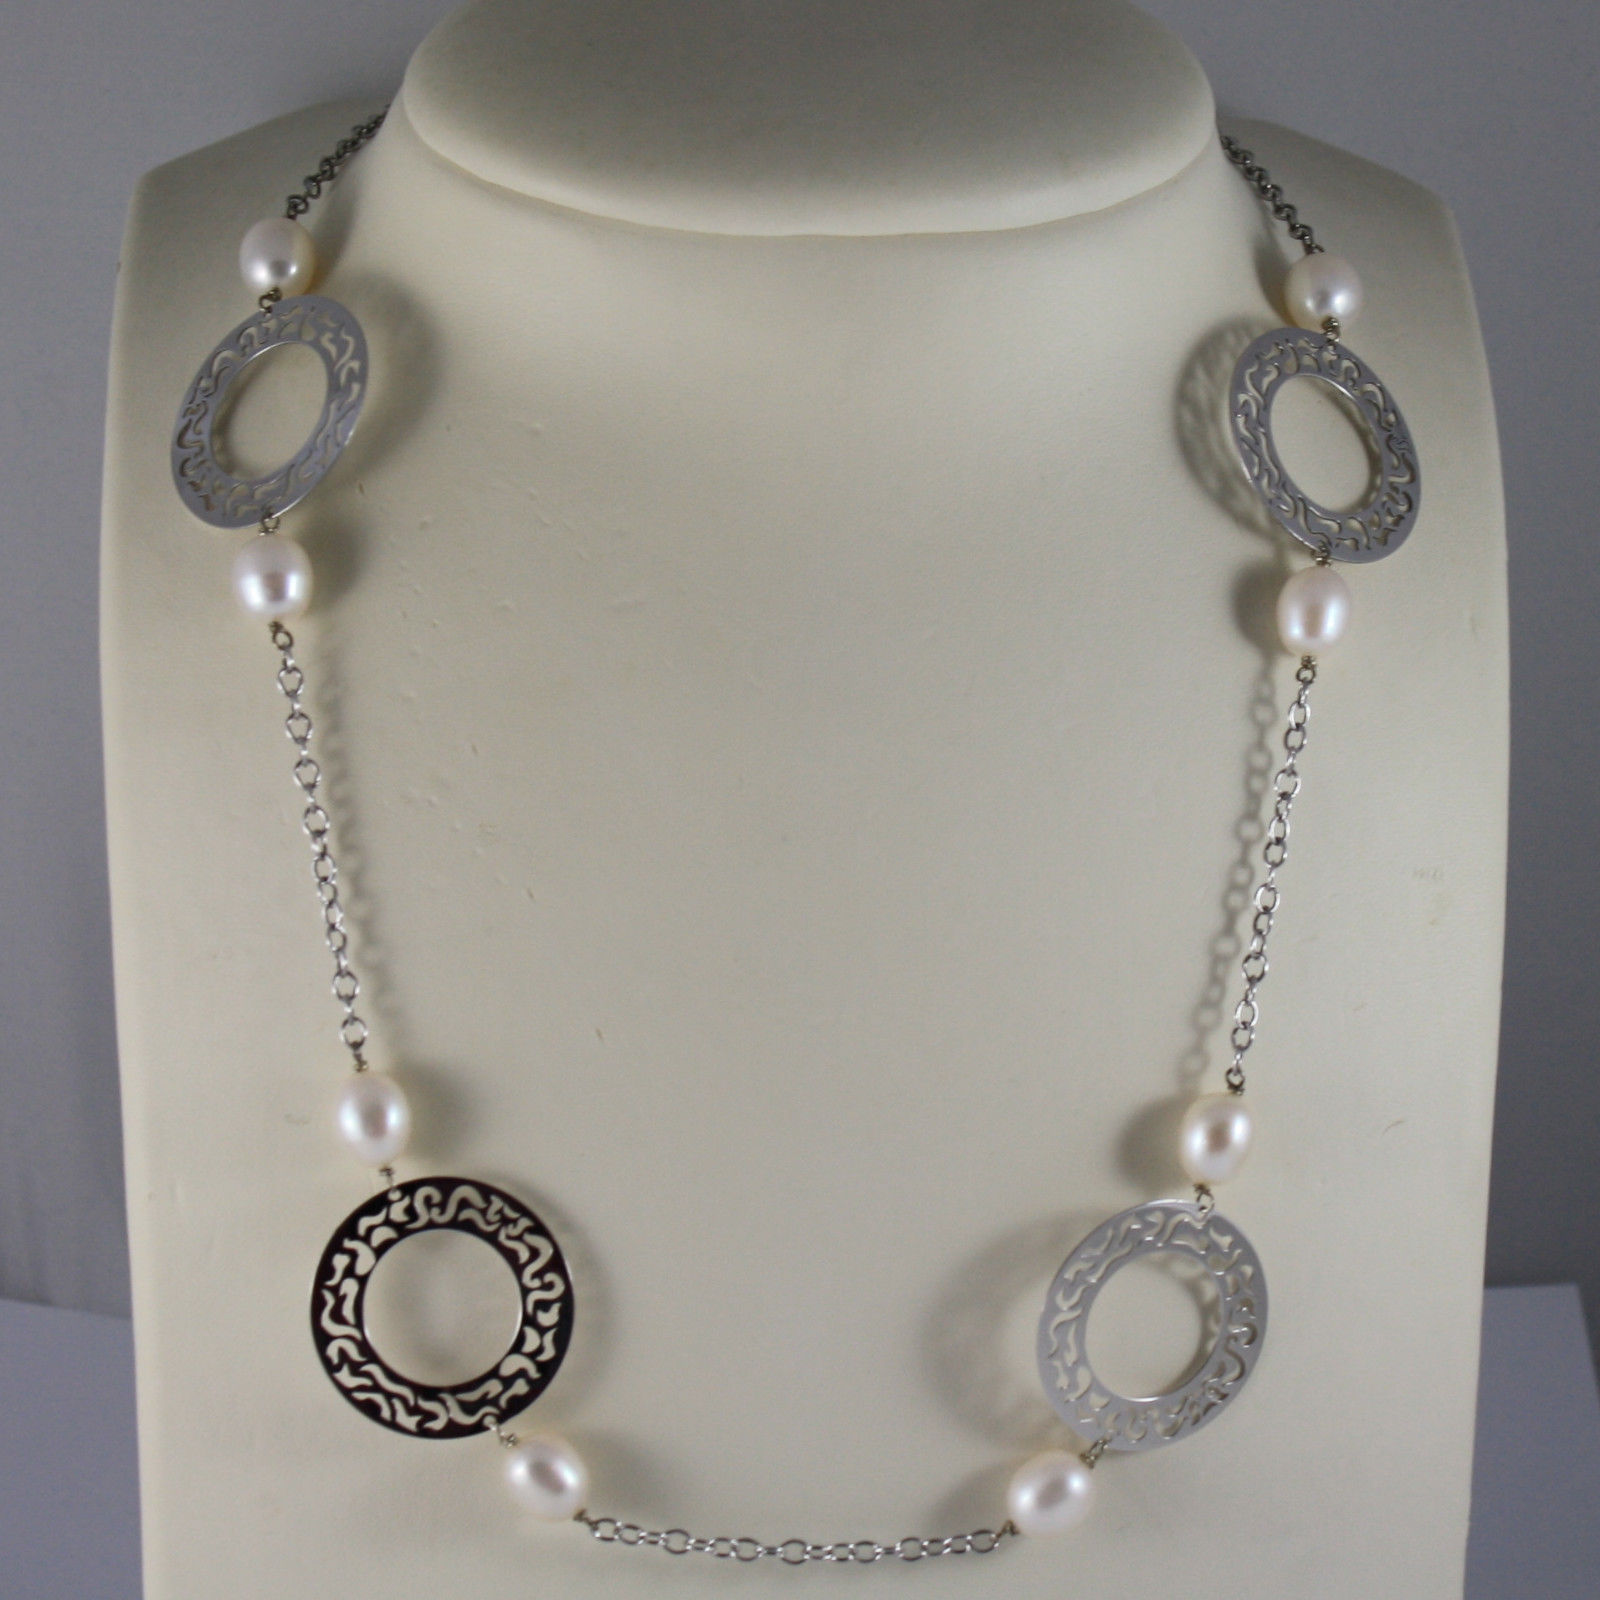 .925 RHODIUM SILVER NECKLACE WITH WHITE PEARLS AND PERFORATED DISC